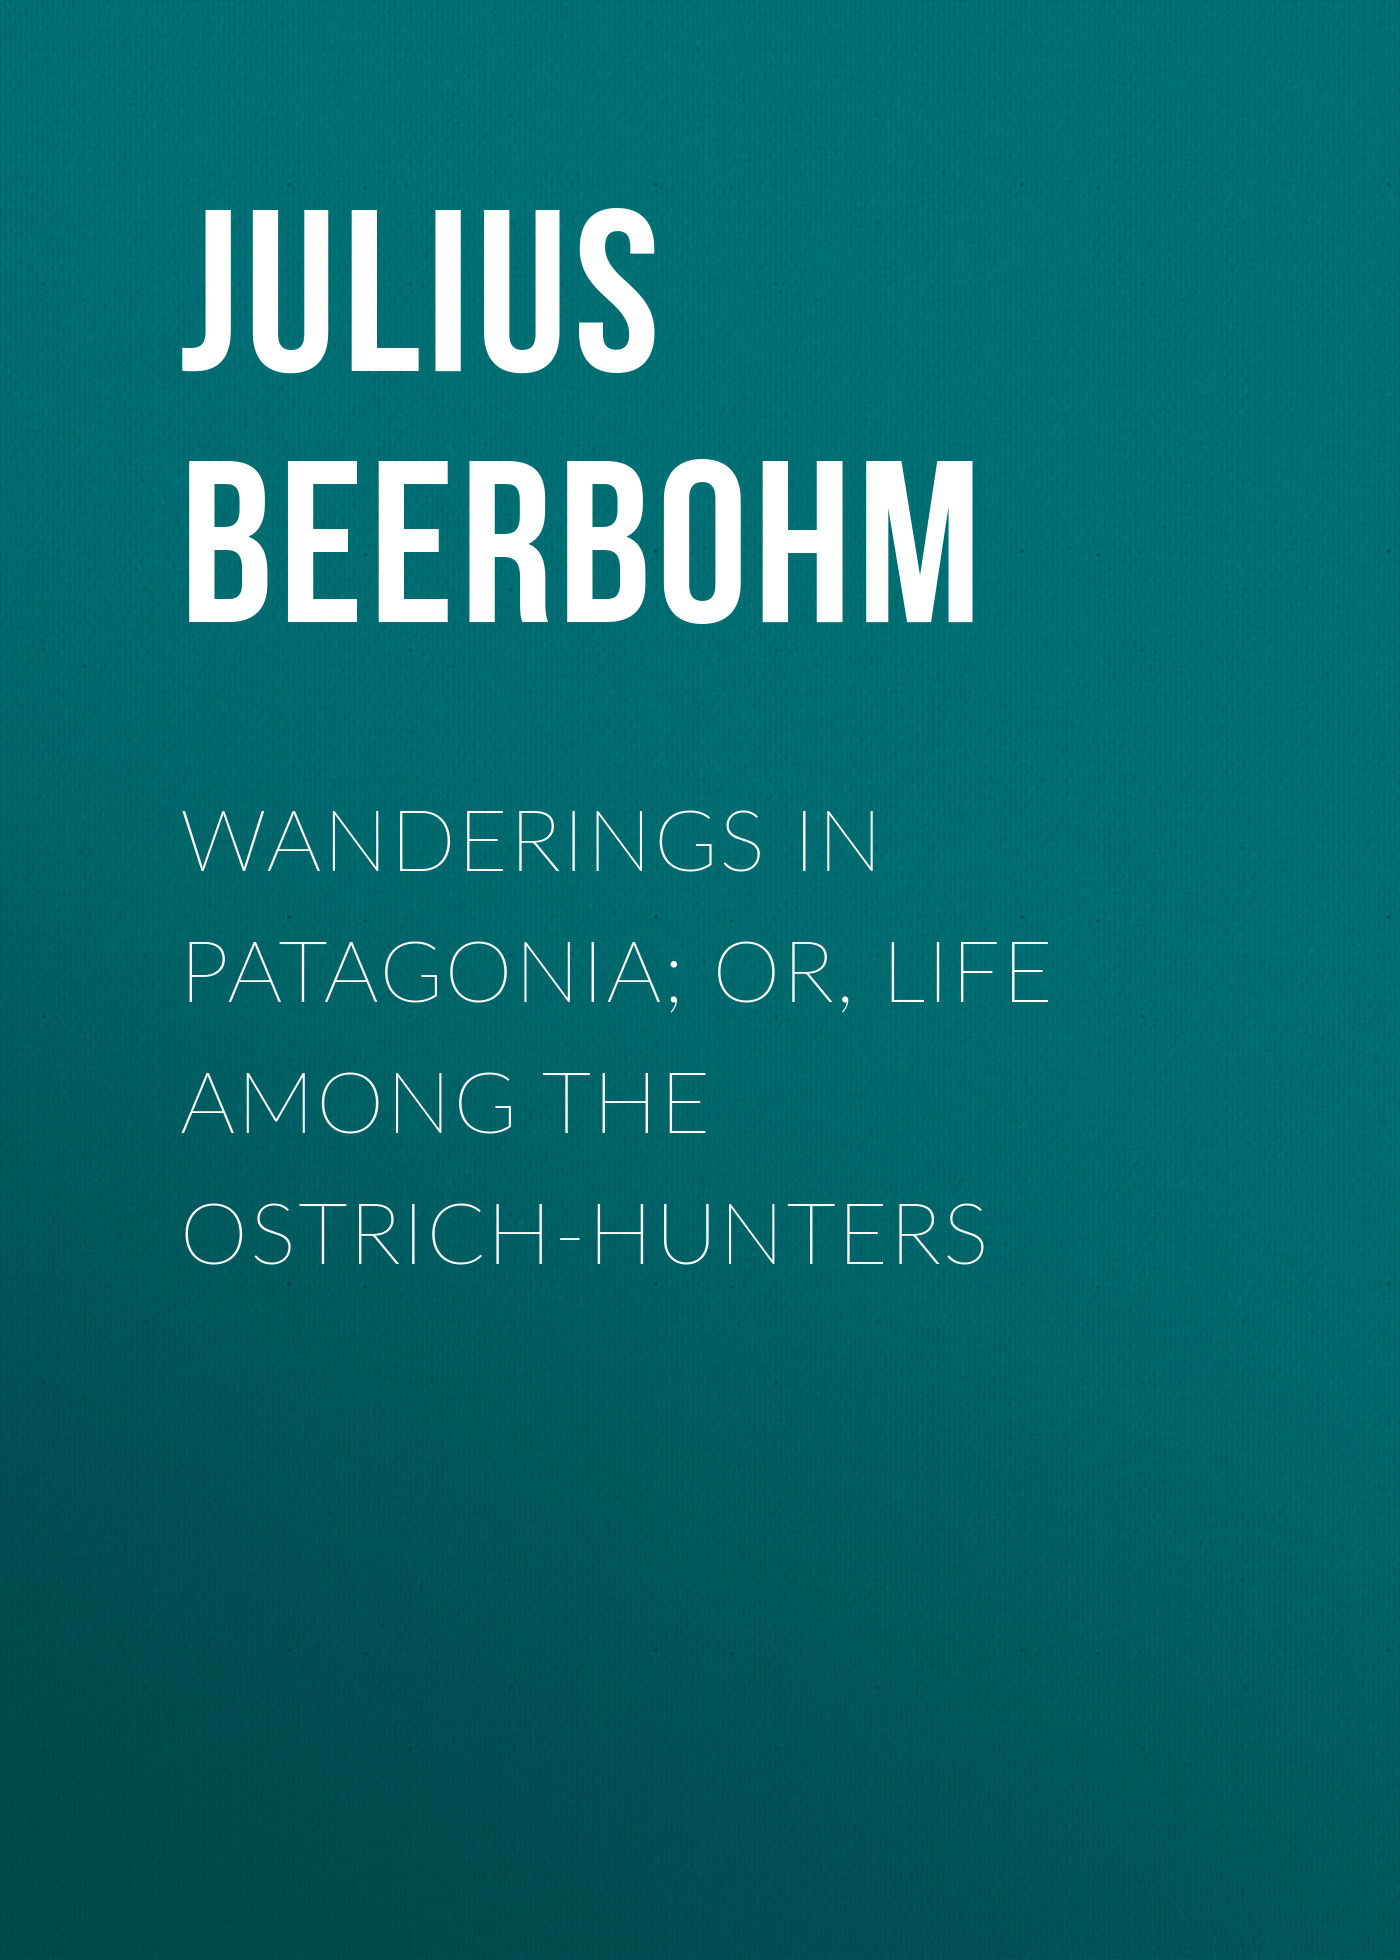 Beerbohm Julius Wanderings in Patagonia; Or, Life Among the Ostrich-Hunters rebecca harding davis life in the iron mills or the korl woman